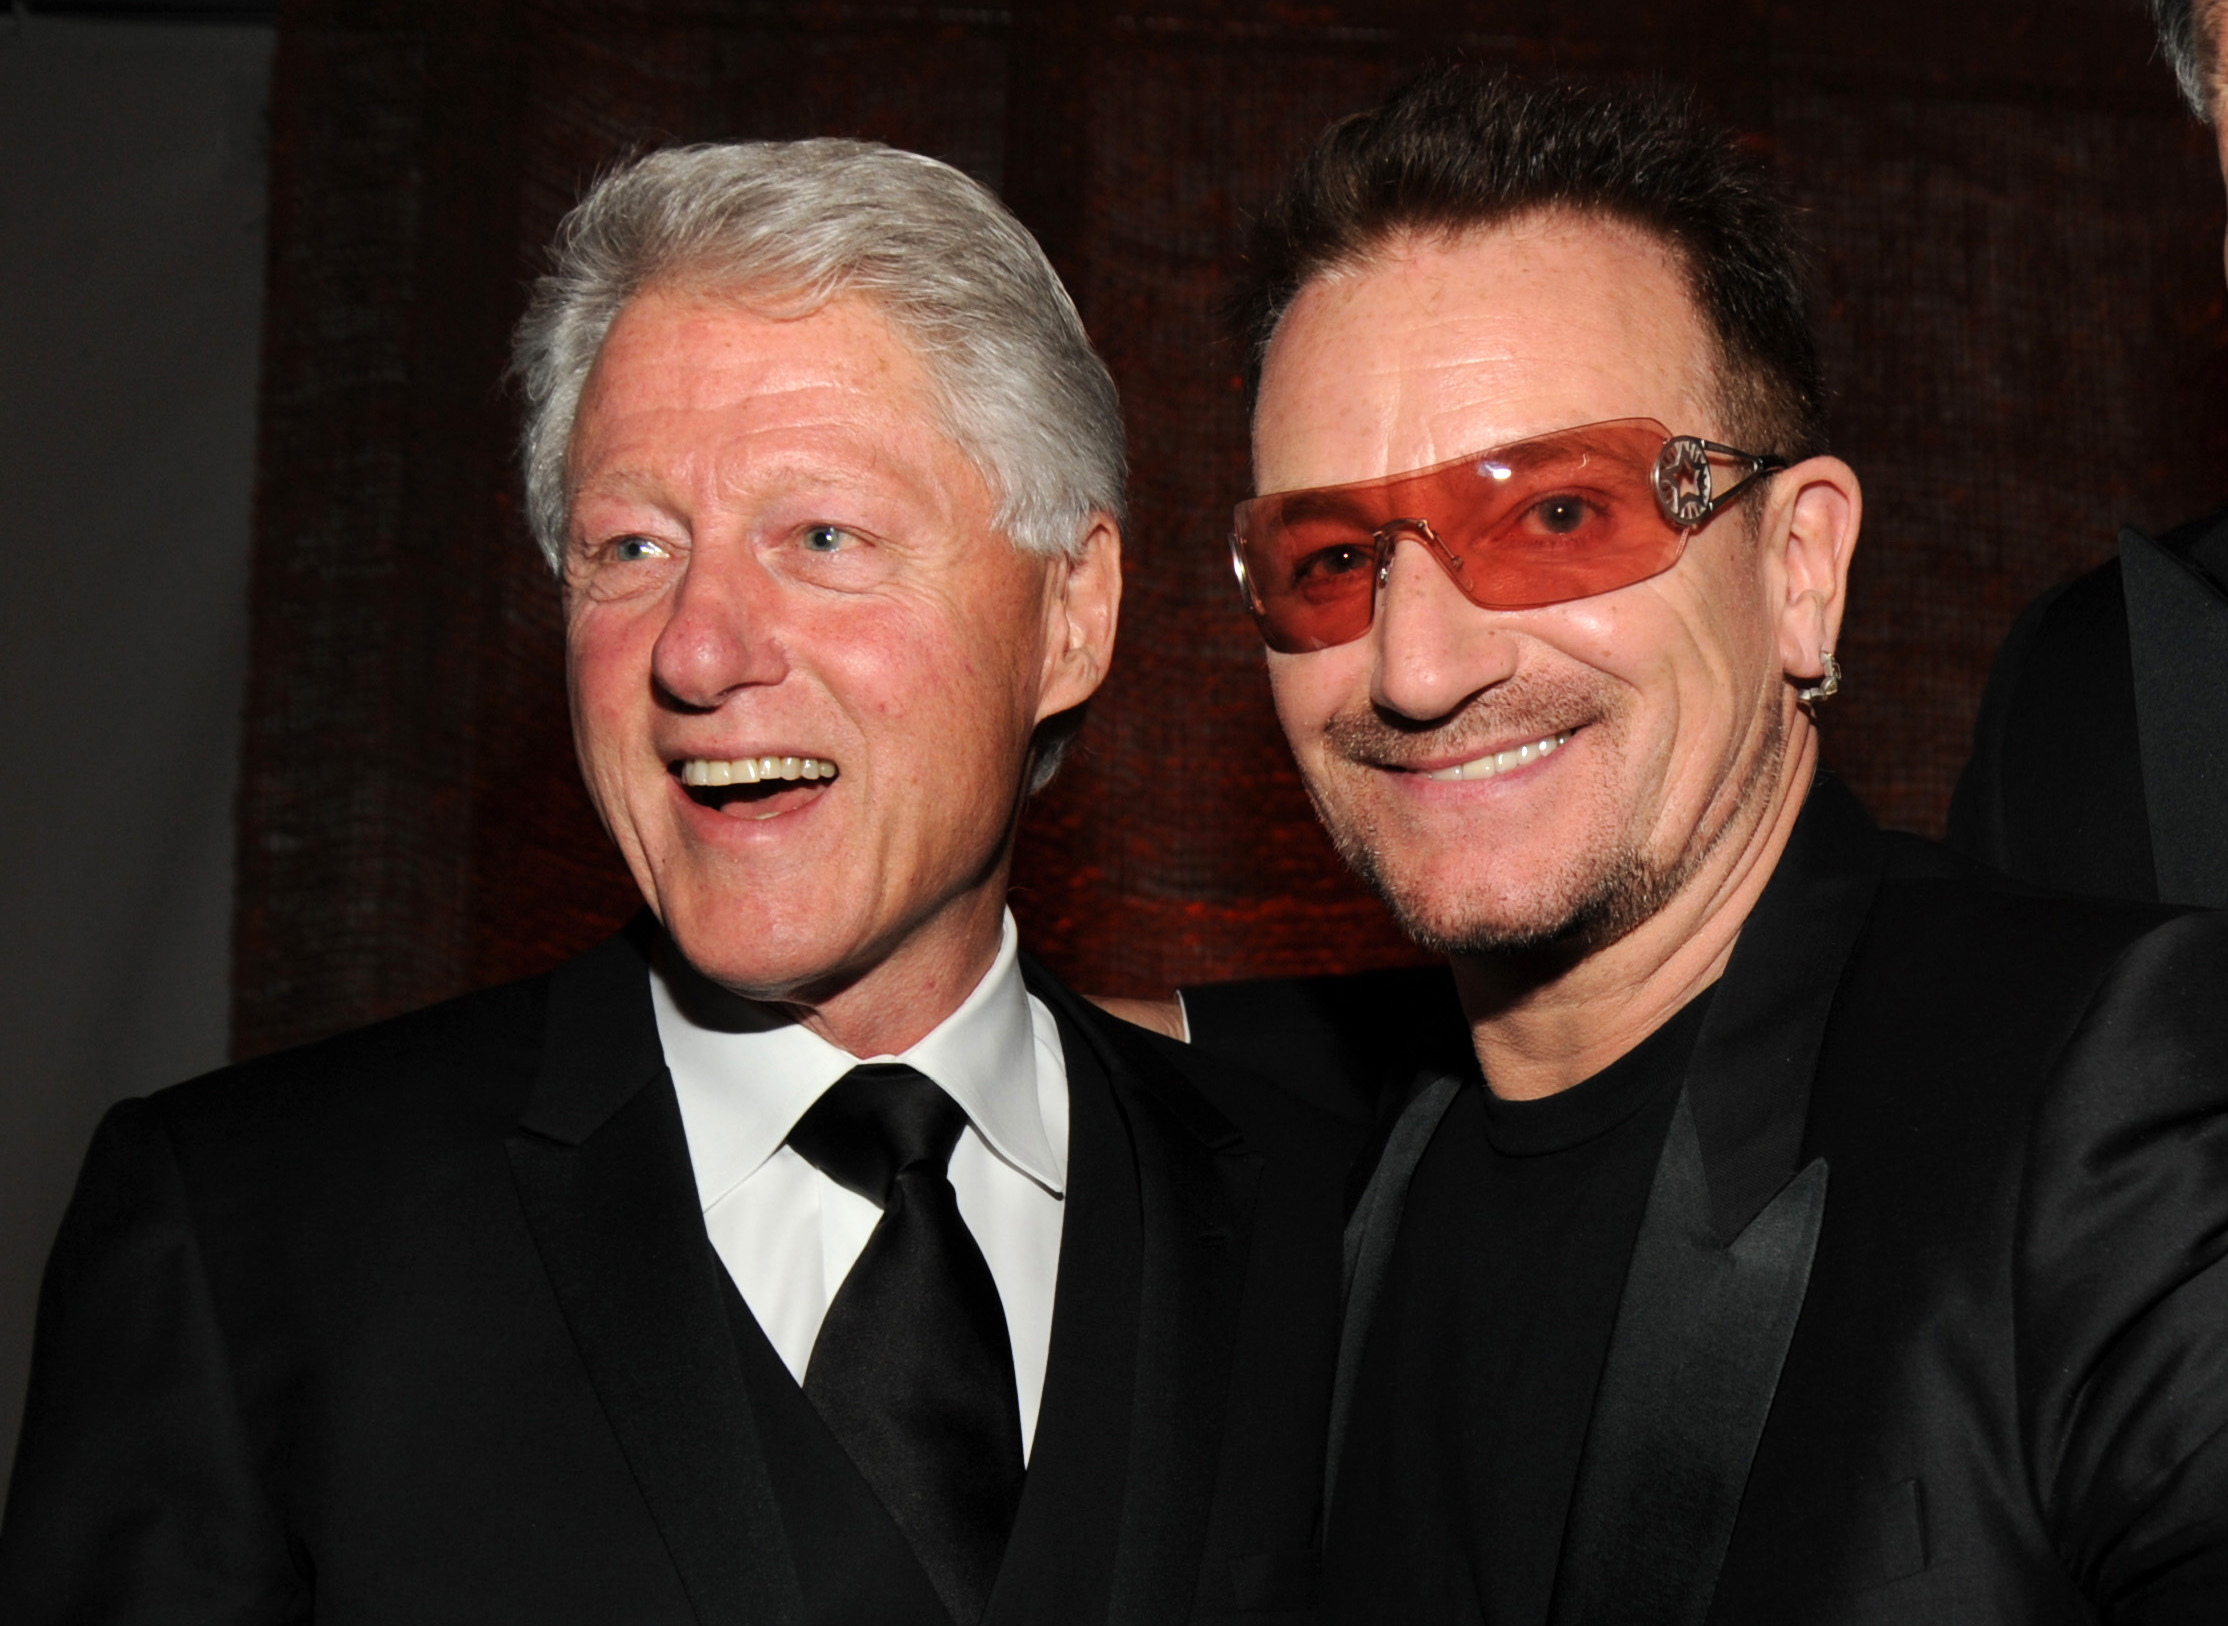 Only On Yahoo! Webcast: Lady Gaga, Usher, And U2′s The Edge And Bono To Celebrate Bill Clinton's Charitable Work